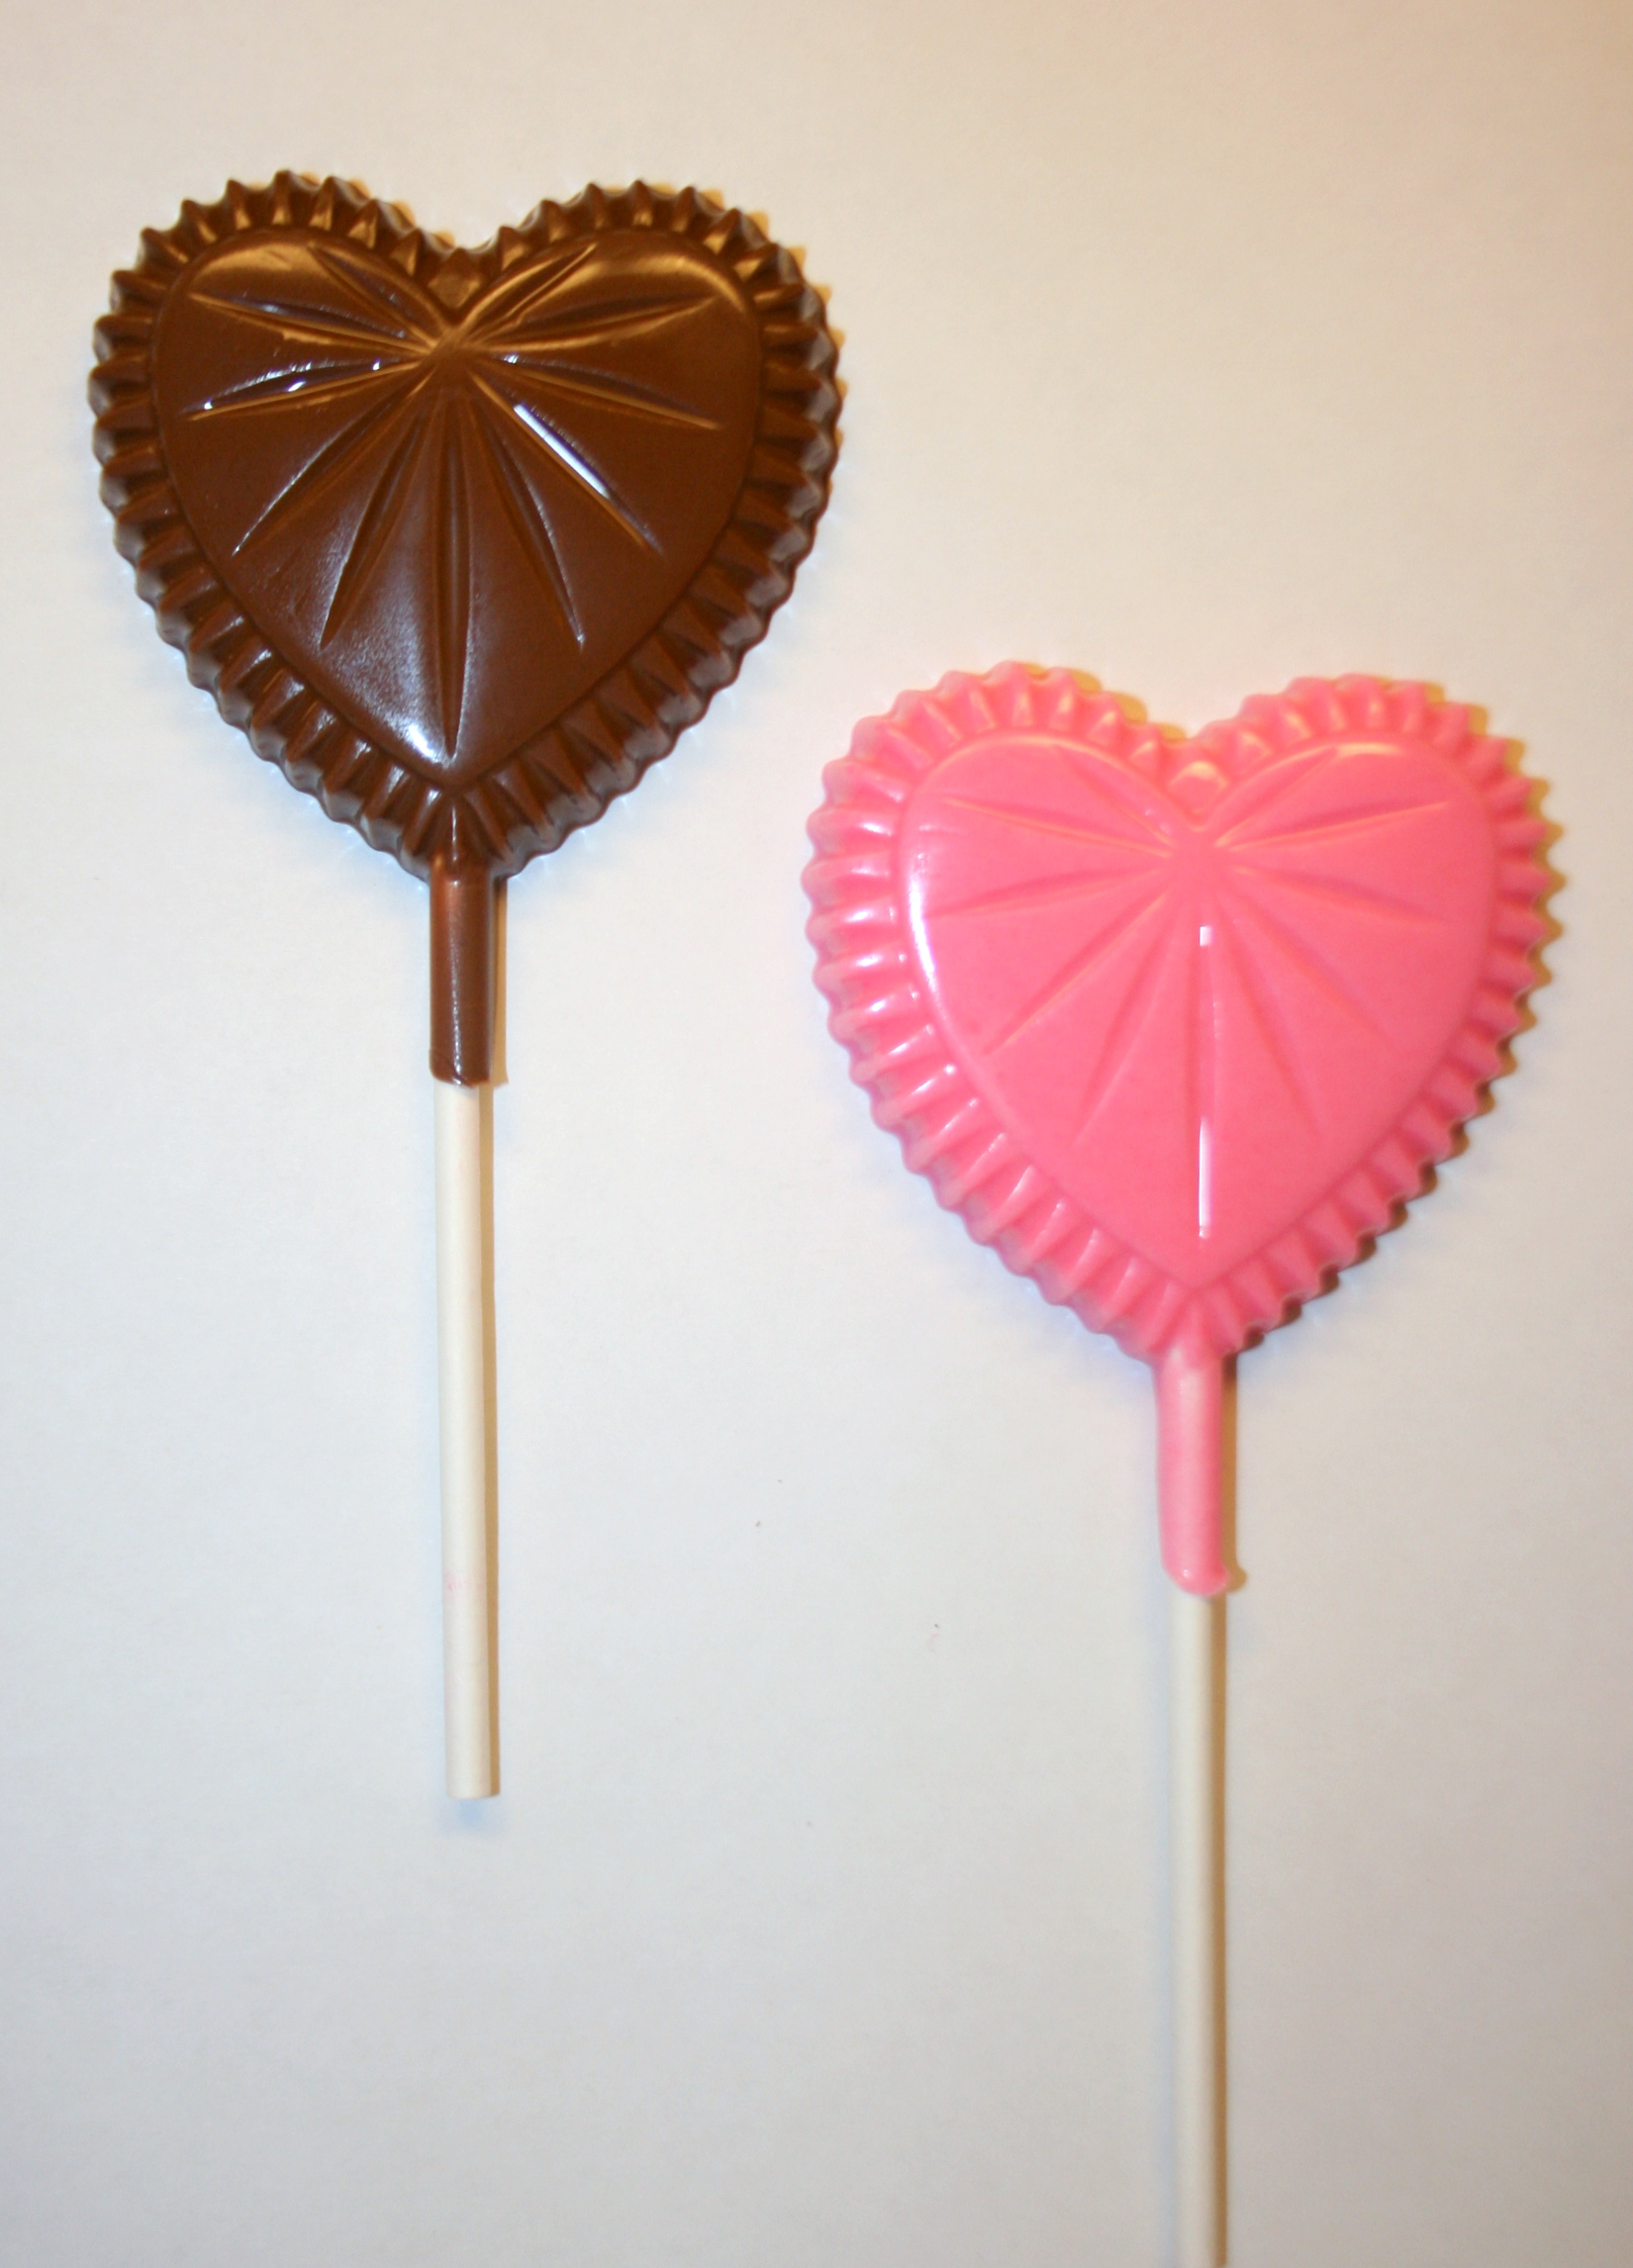 2 00 Usd A Delicious Crystal Heart Chocolate Lollipop